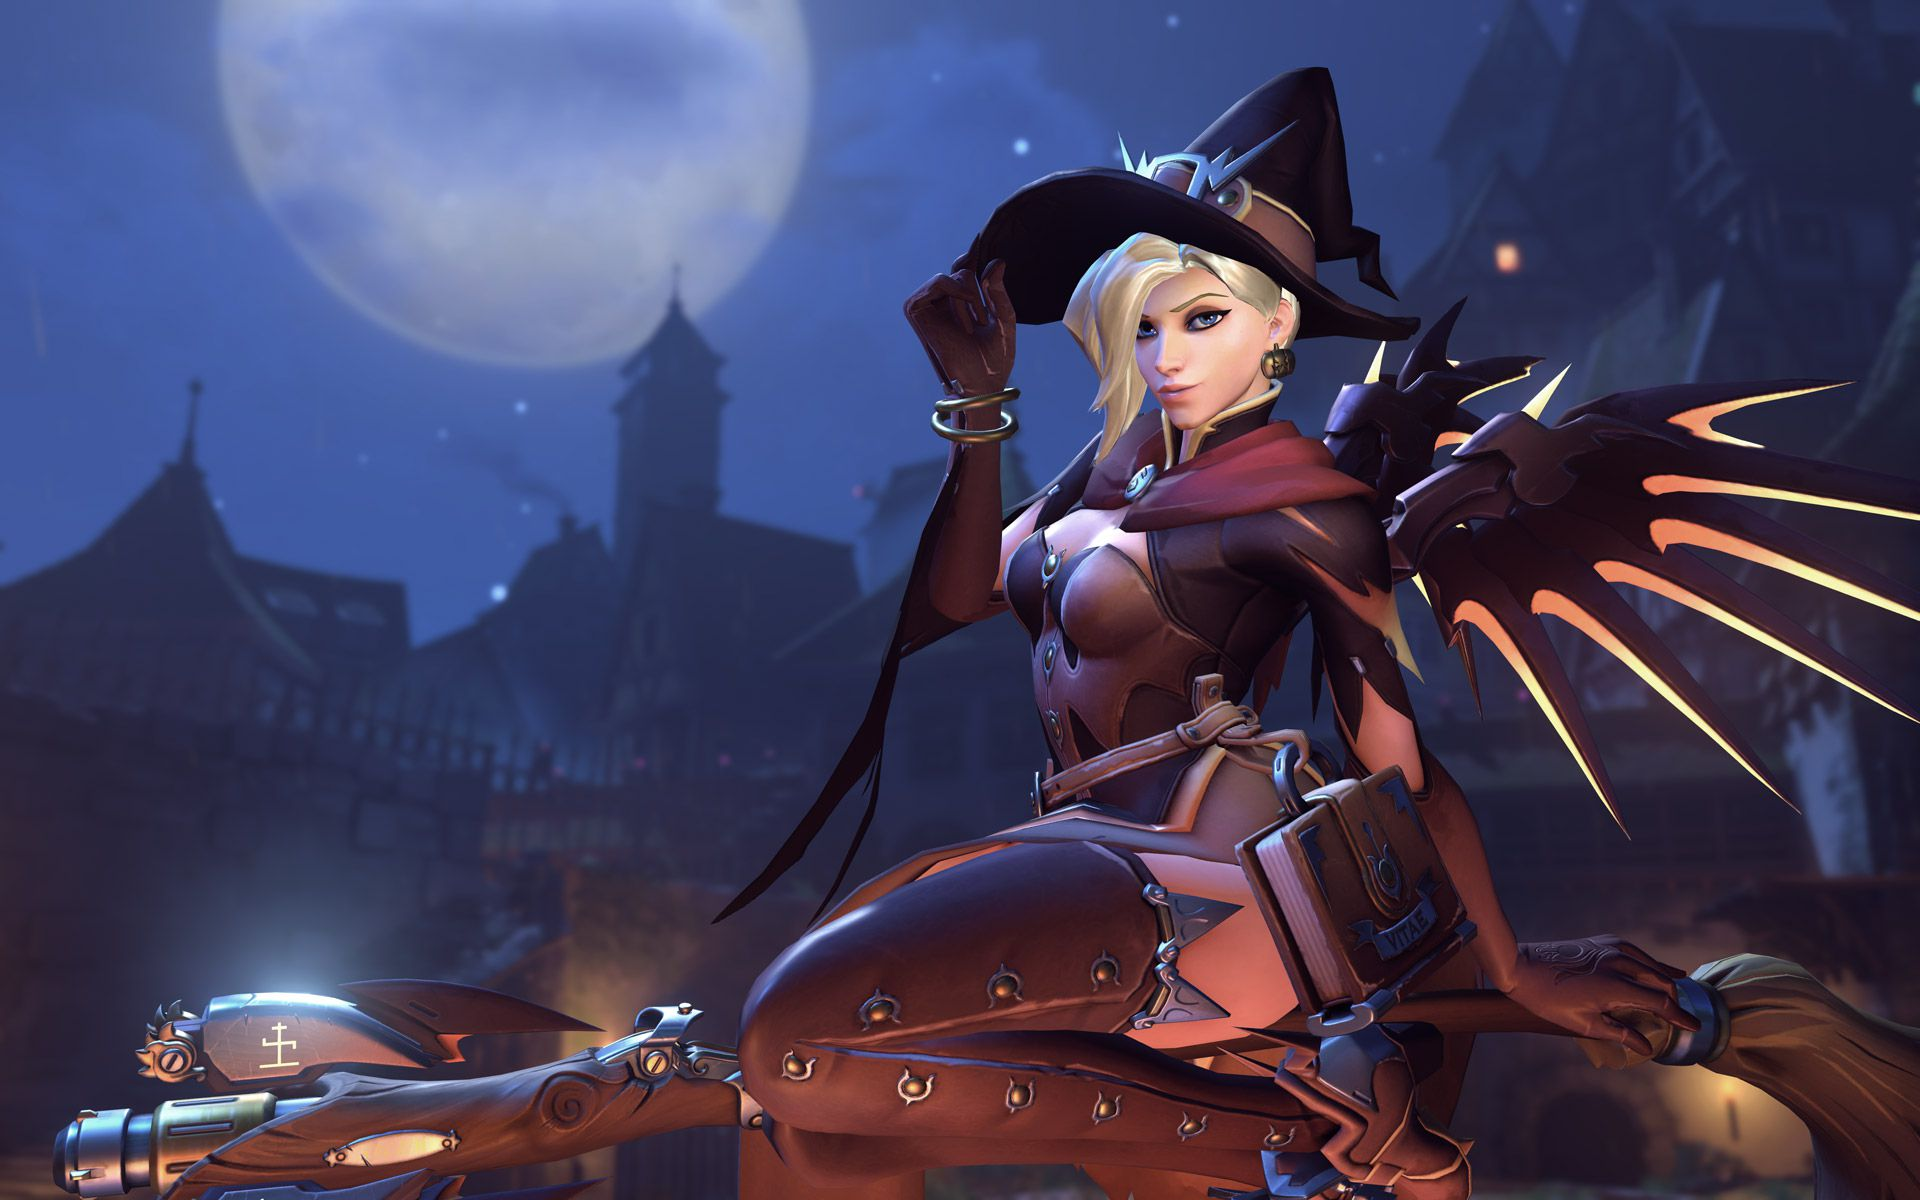 Mercy nerfed, Ana buffed in the latest Overwatch PTR